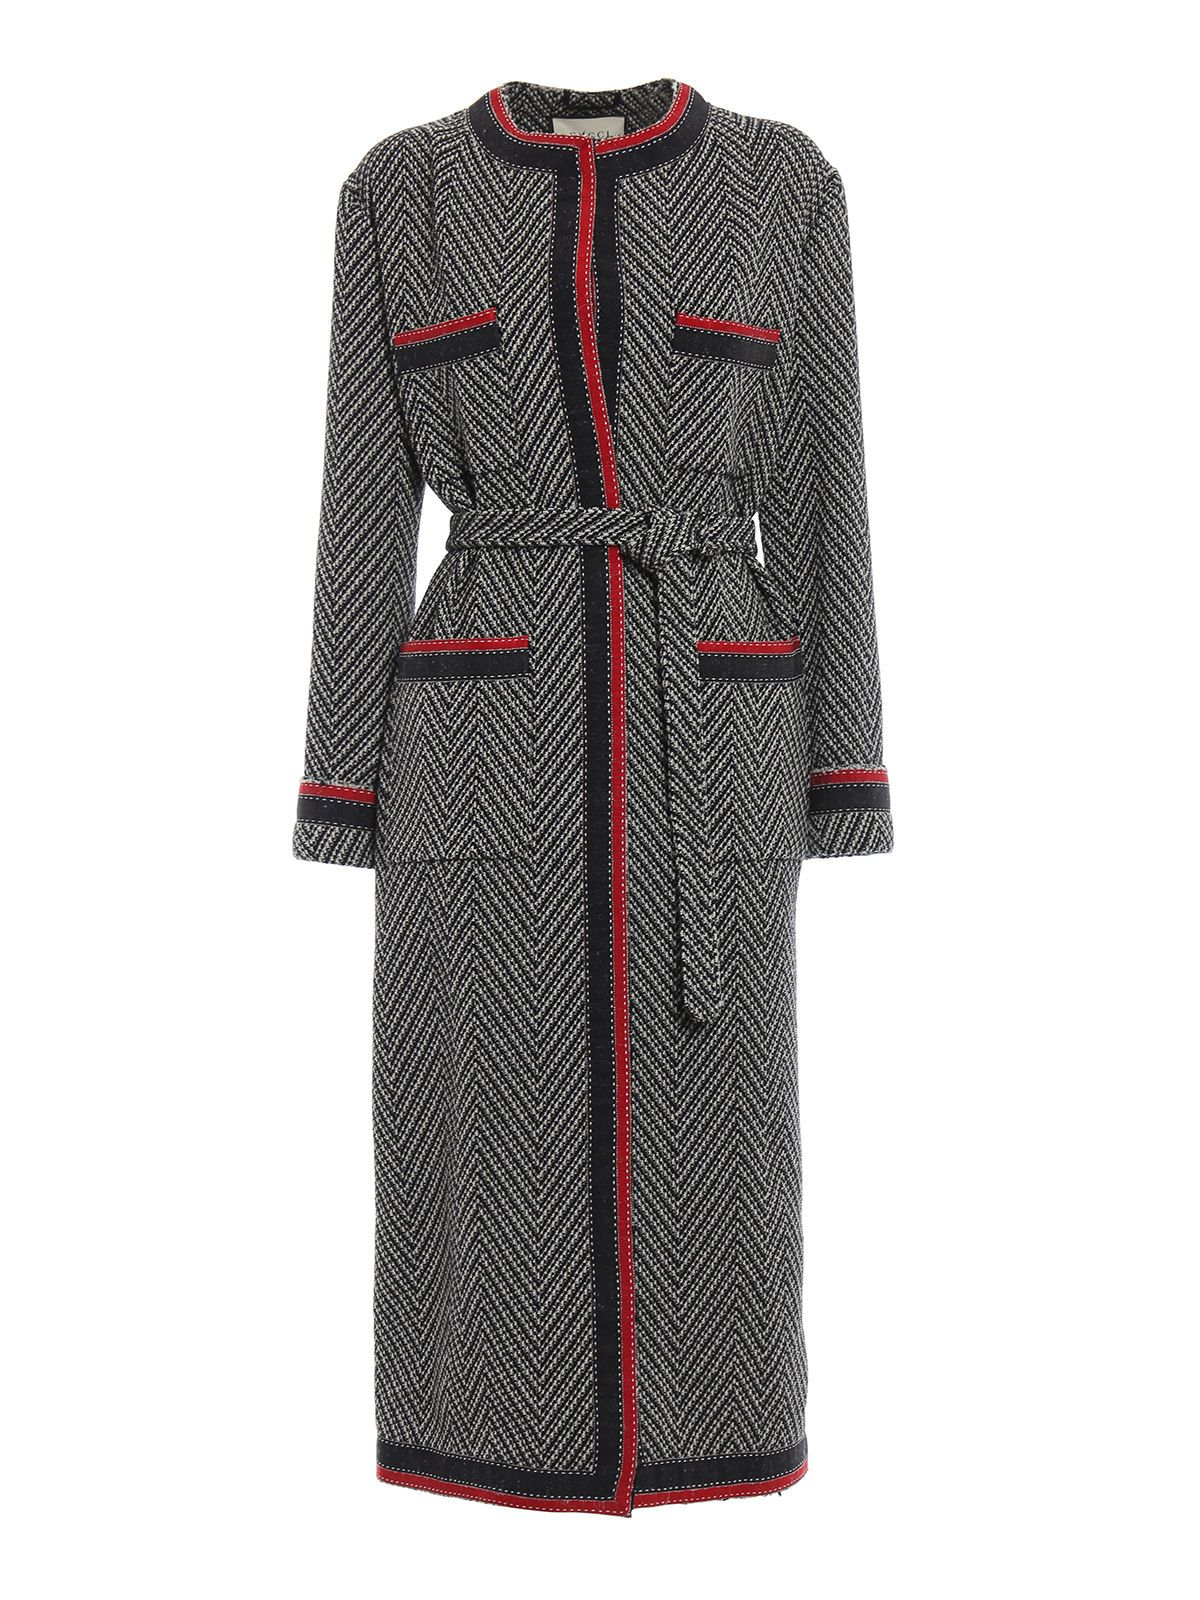 GUCCI RIBBON COAT